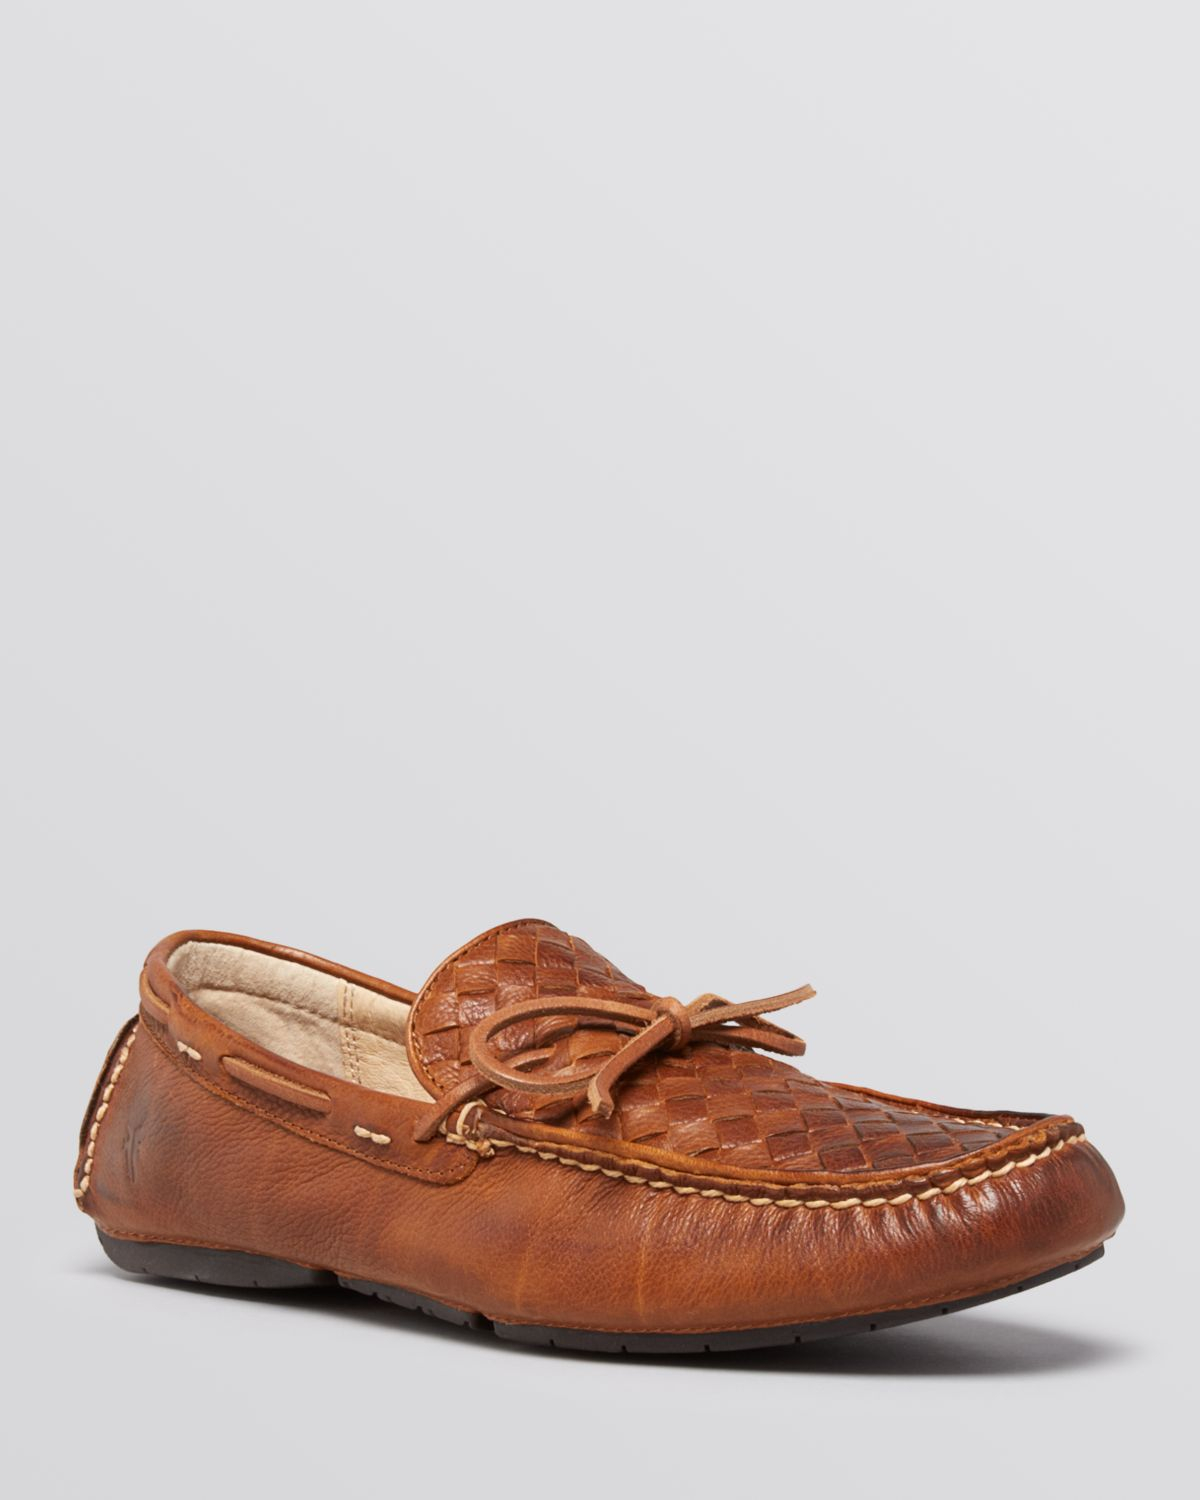 FRYE Brown Loafers outlet for nice official site sale online sale 2015 new choice cheap price P0aI7jQ9